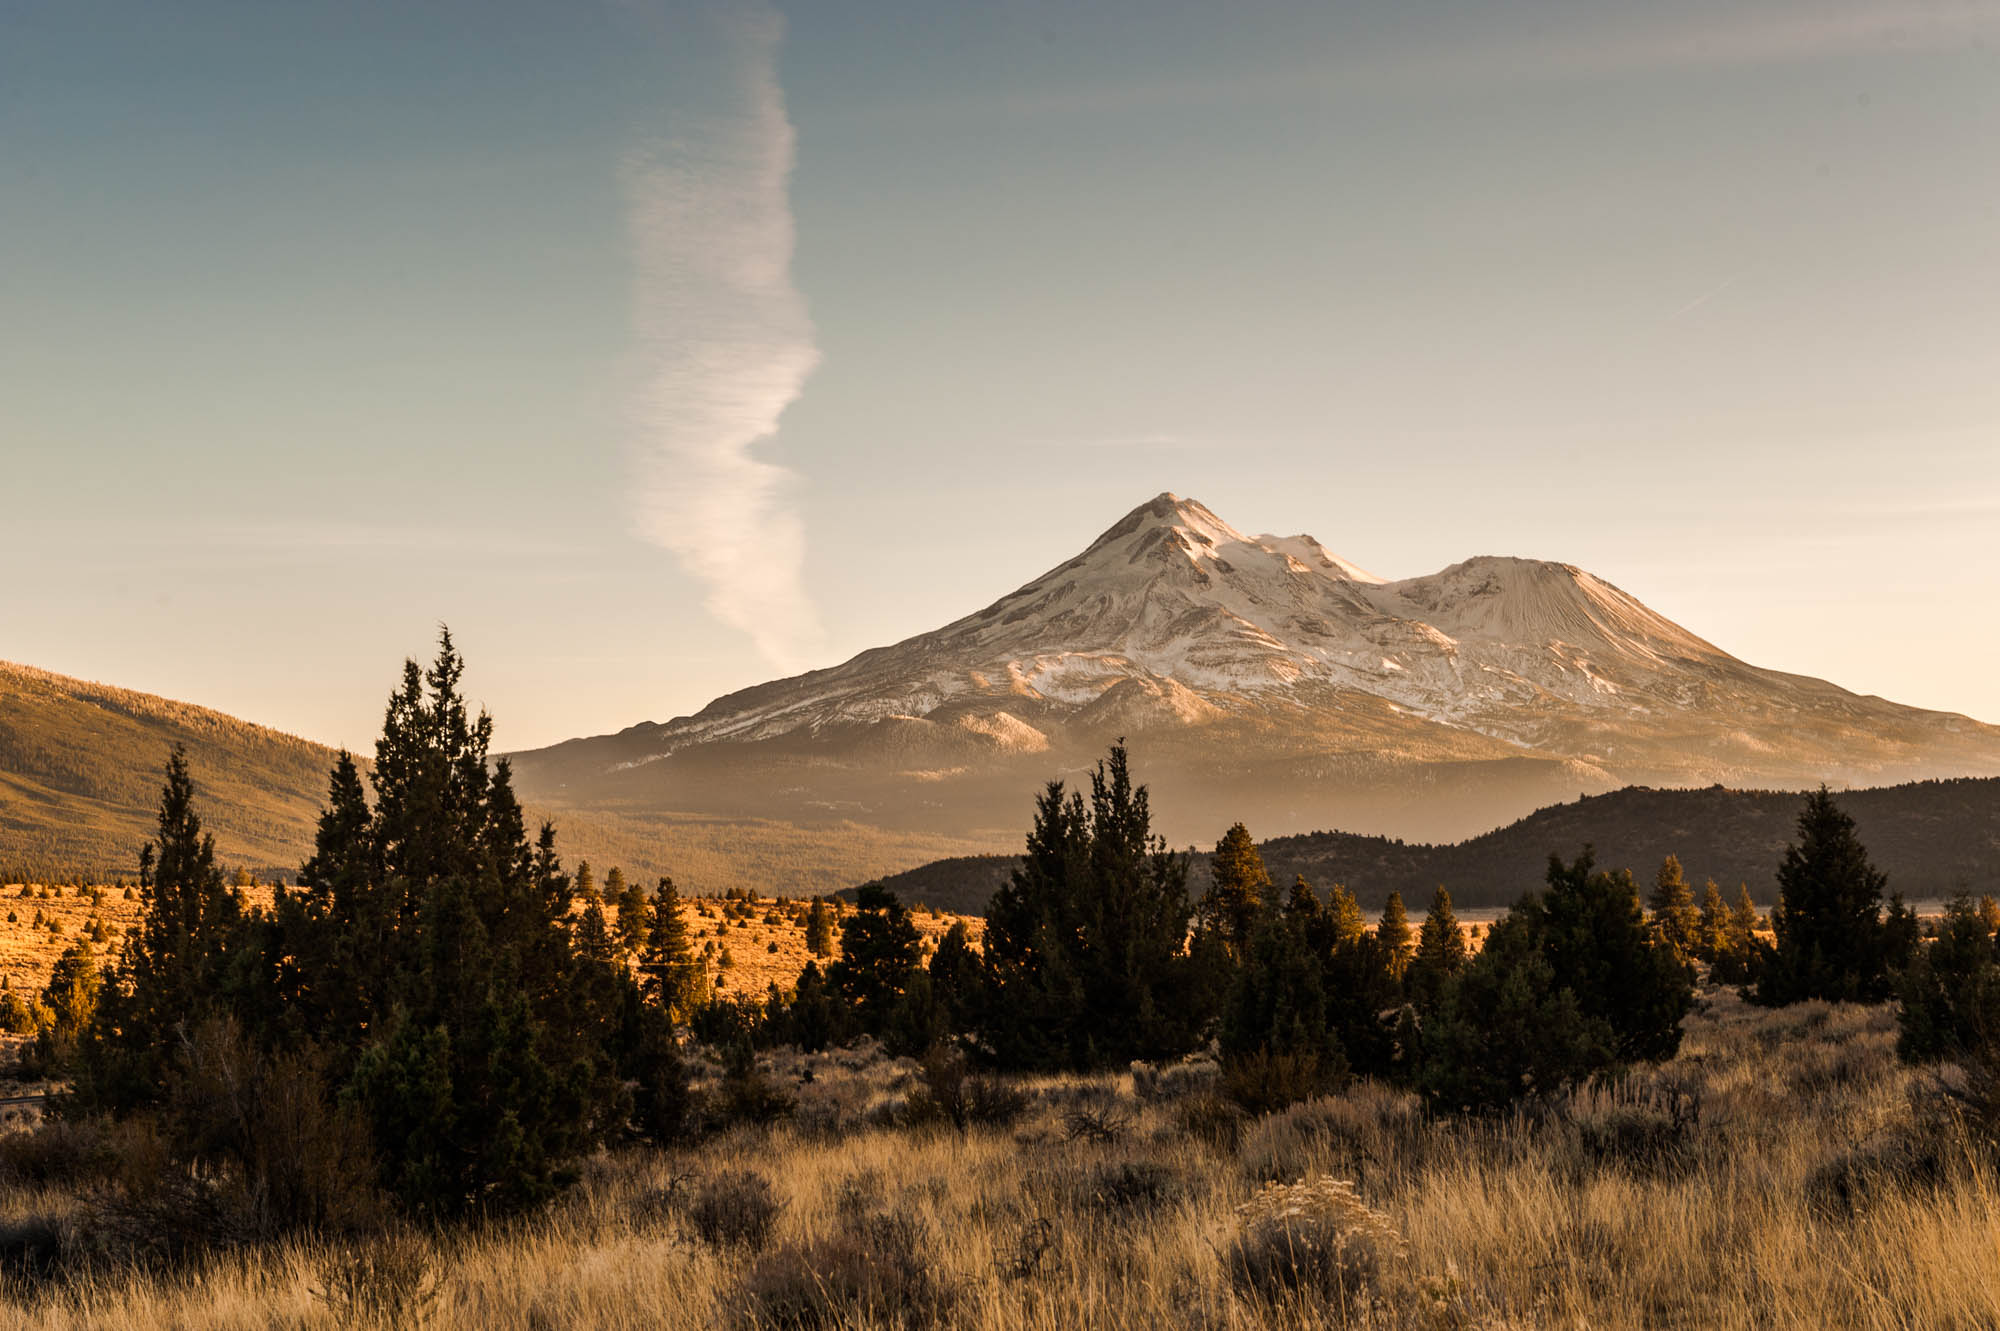 Mount Shasta is considered a sacred mountain with an energy vortex. The mountain has long been revered by the Native Americans of the area, who regard it as the center of creation.